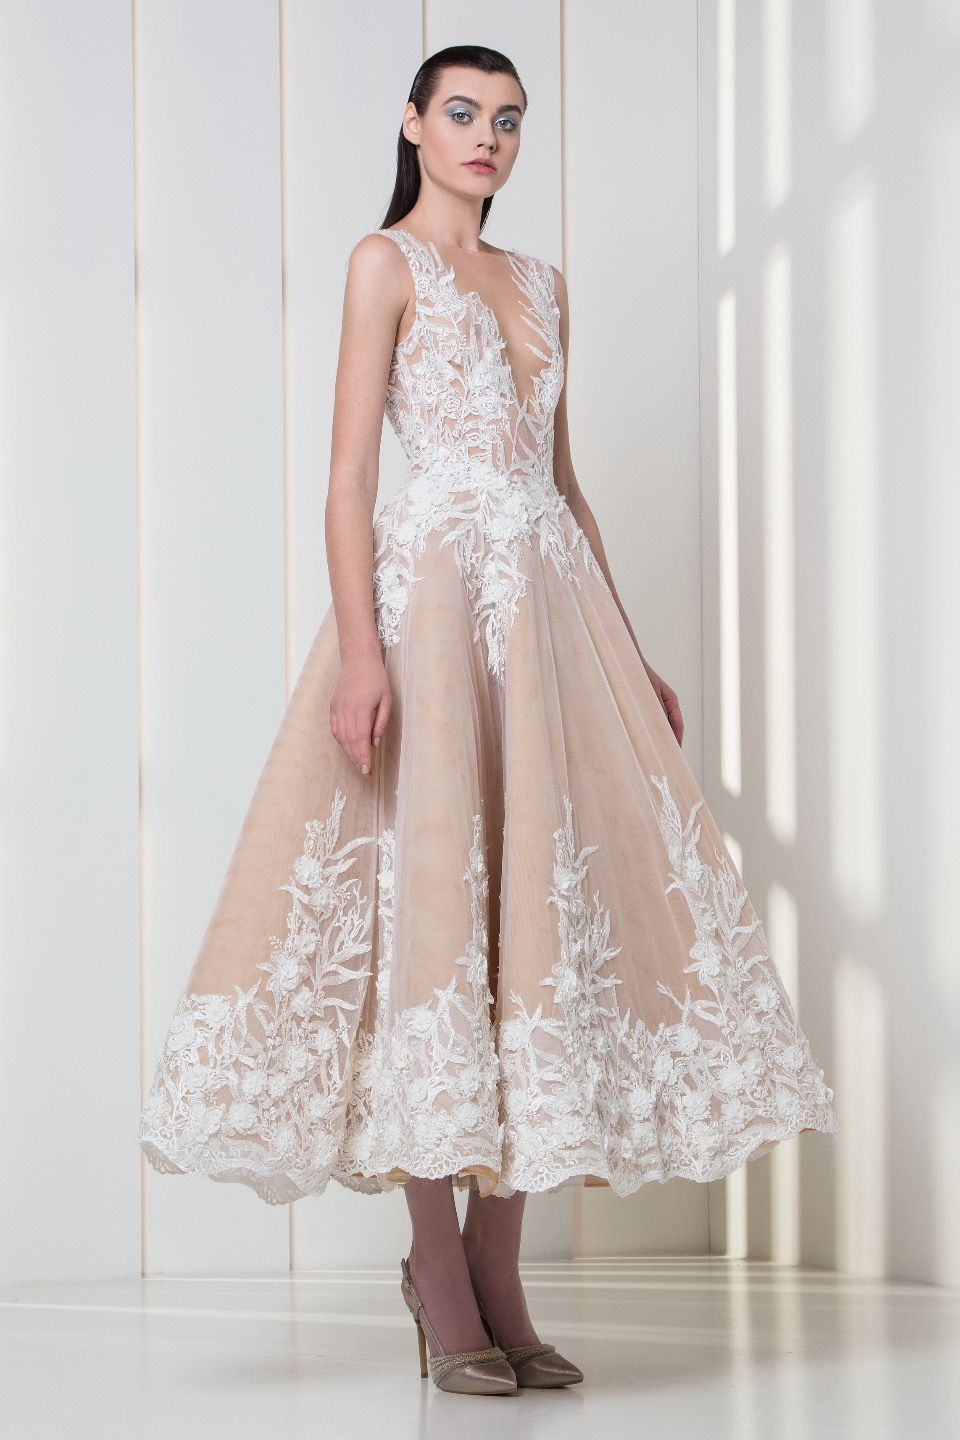 Wear to wedding dresses  Tony Ward Fall Winter  Ready To Wear  Gowns Oh Such